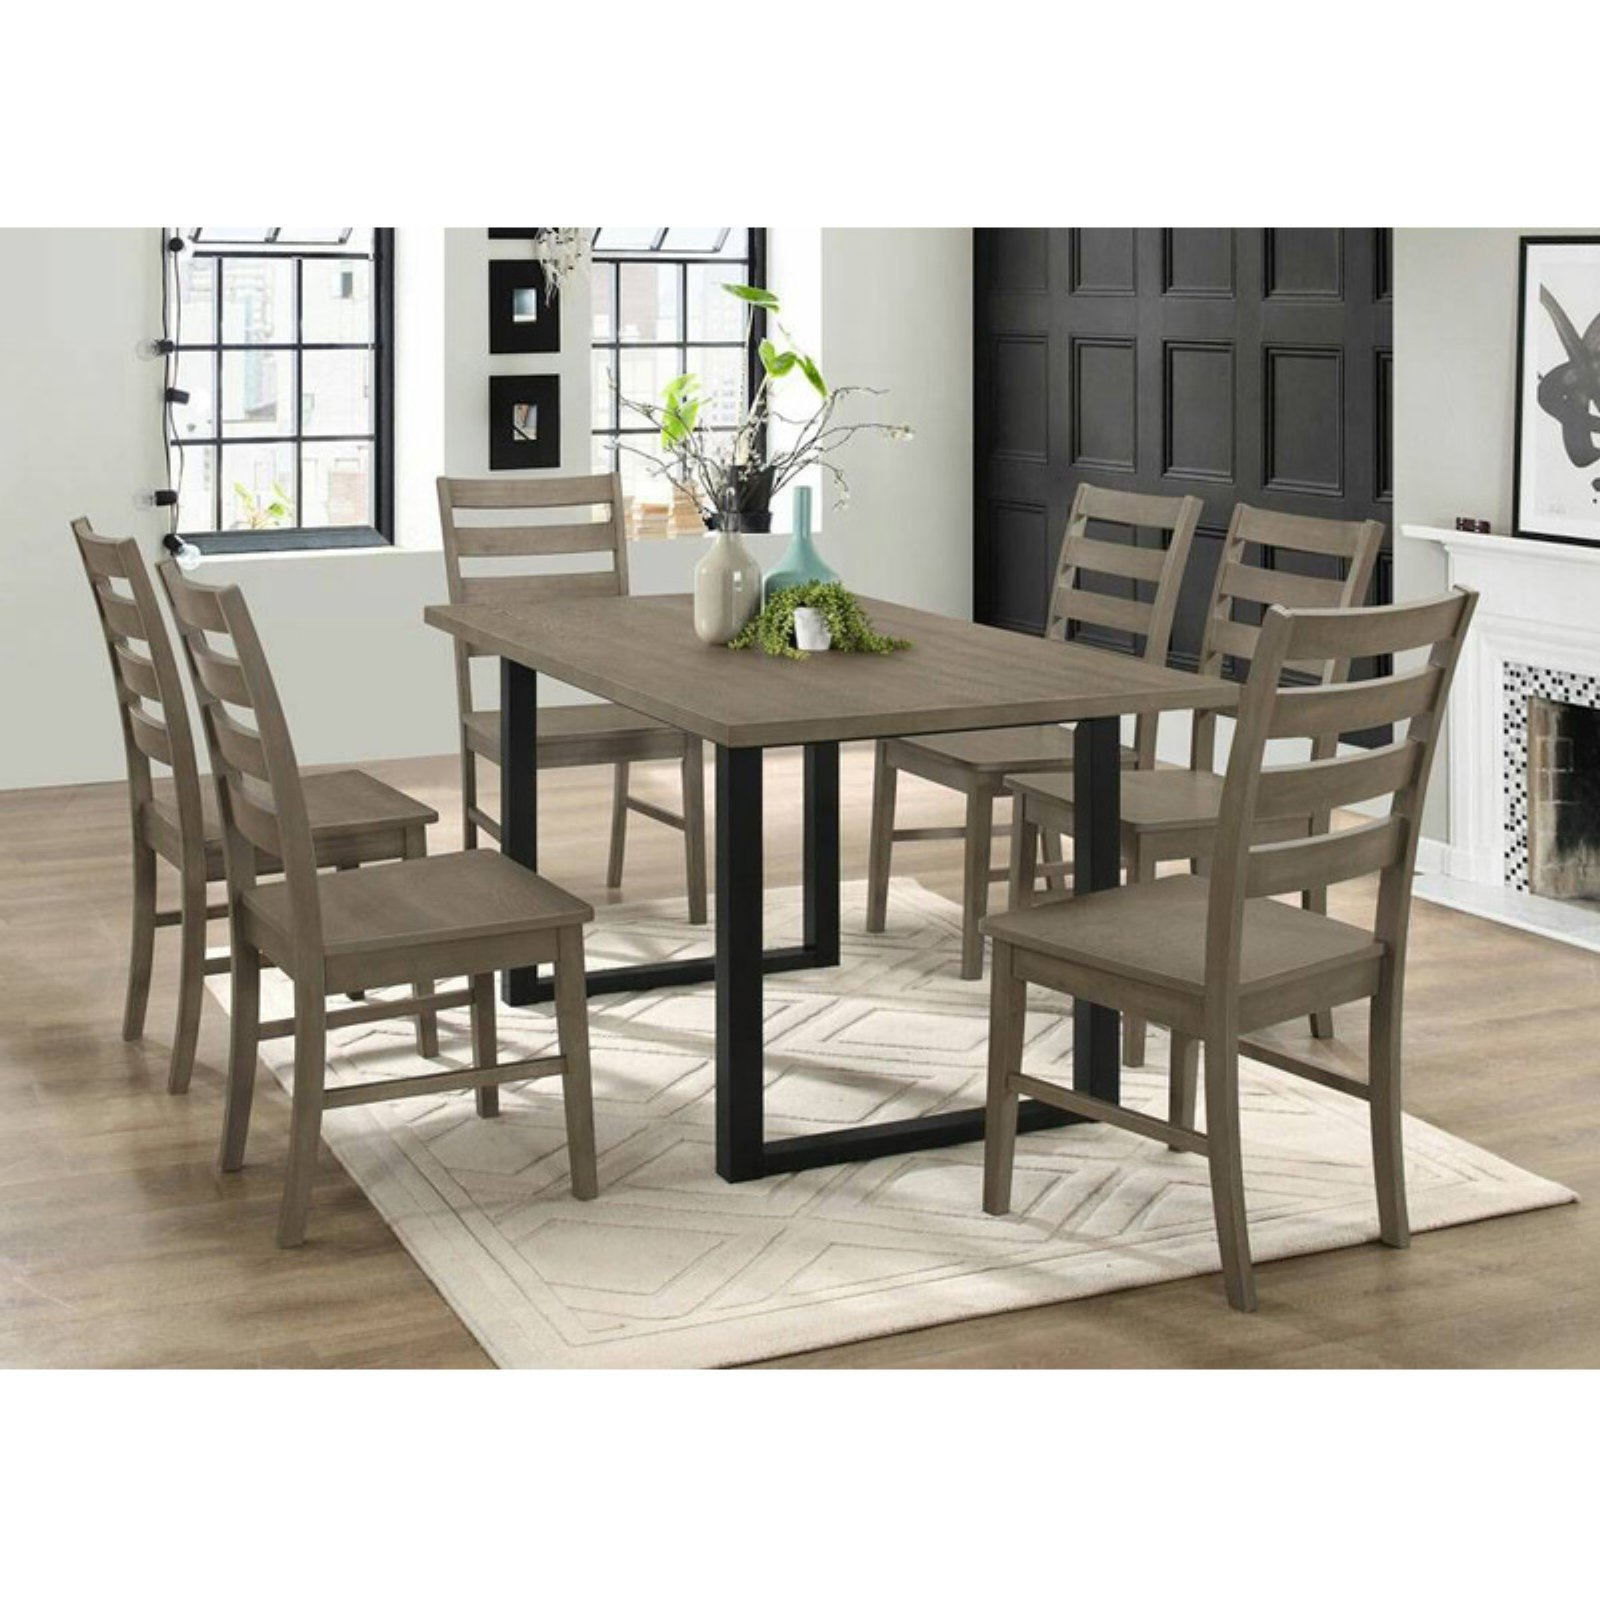 Walker Edison Modern 7 Piece Dining Table Set Grey In 2019 Throughout Best And Newest Kieffer 5 Piece Dining Sets (View 16 of 20)